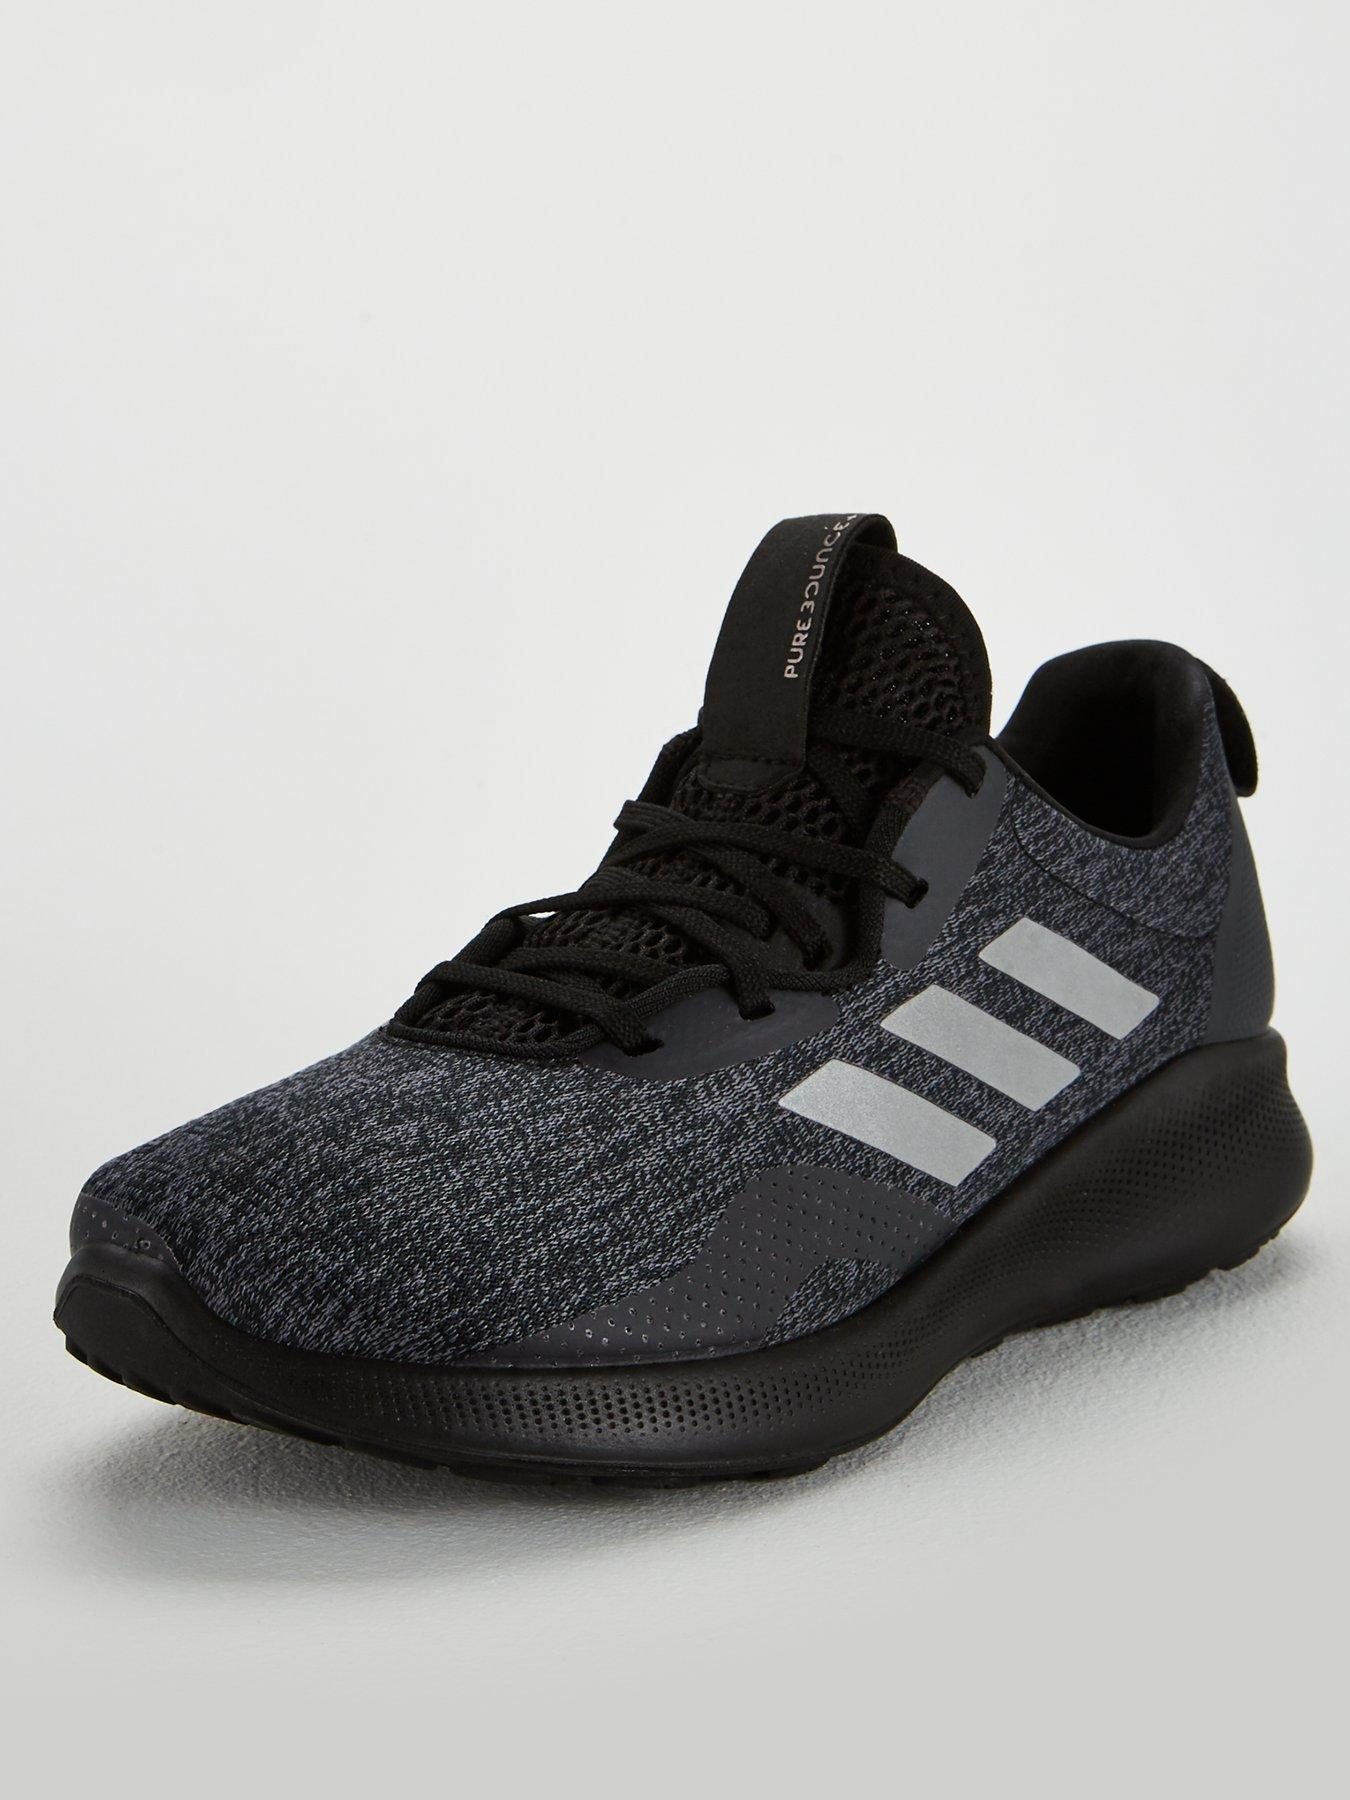 huge selection of 1d9c3 c3090 ireland adidas cloudfoam pure sneaker black white 04887 2cc41 top quality  adidas purebounce street black 324ef e15fa